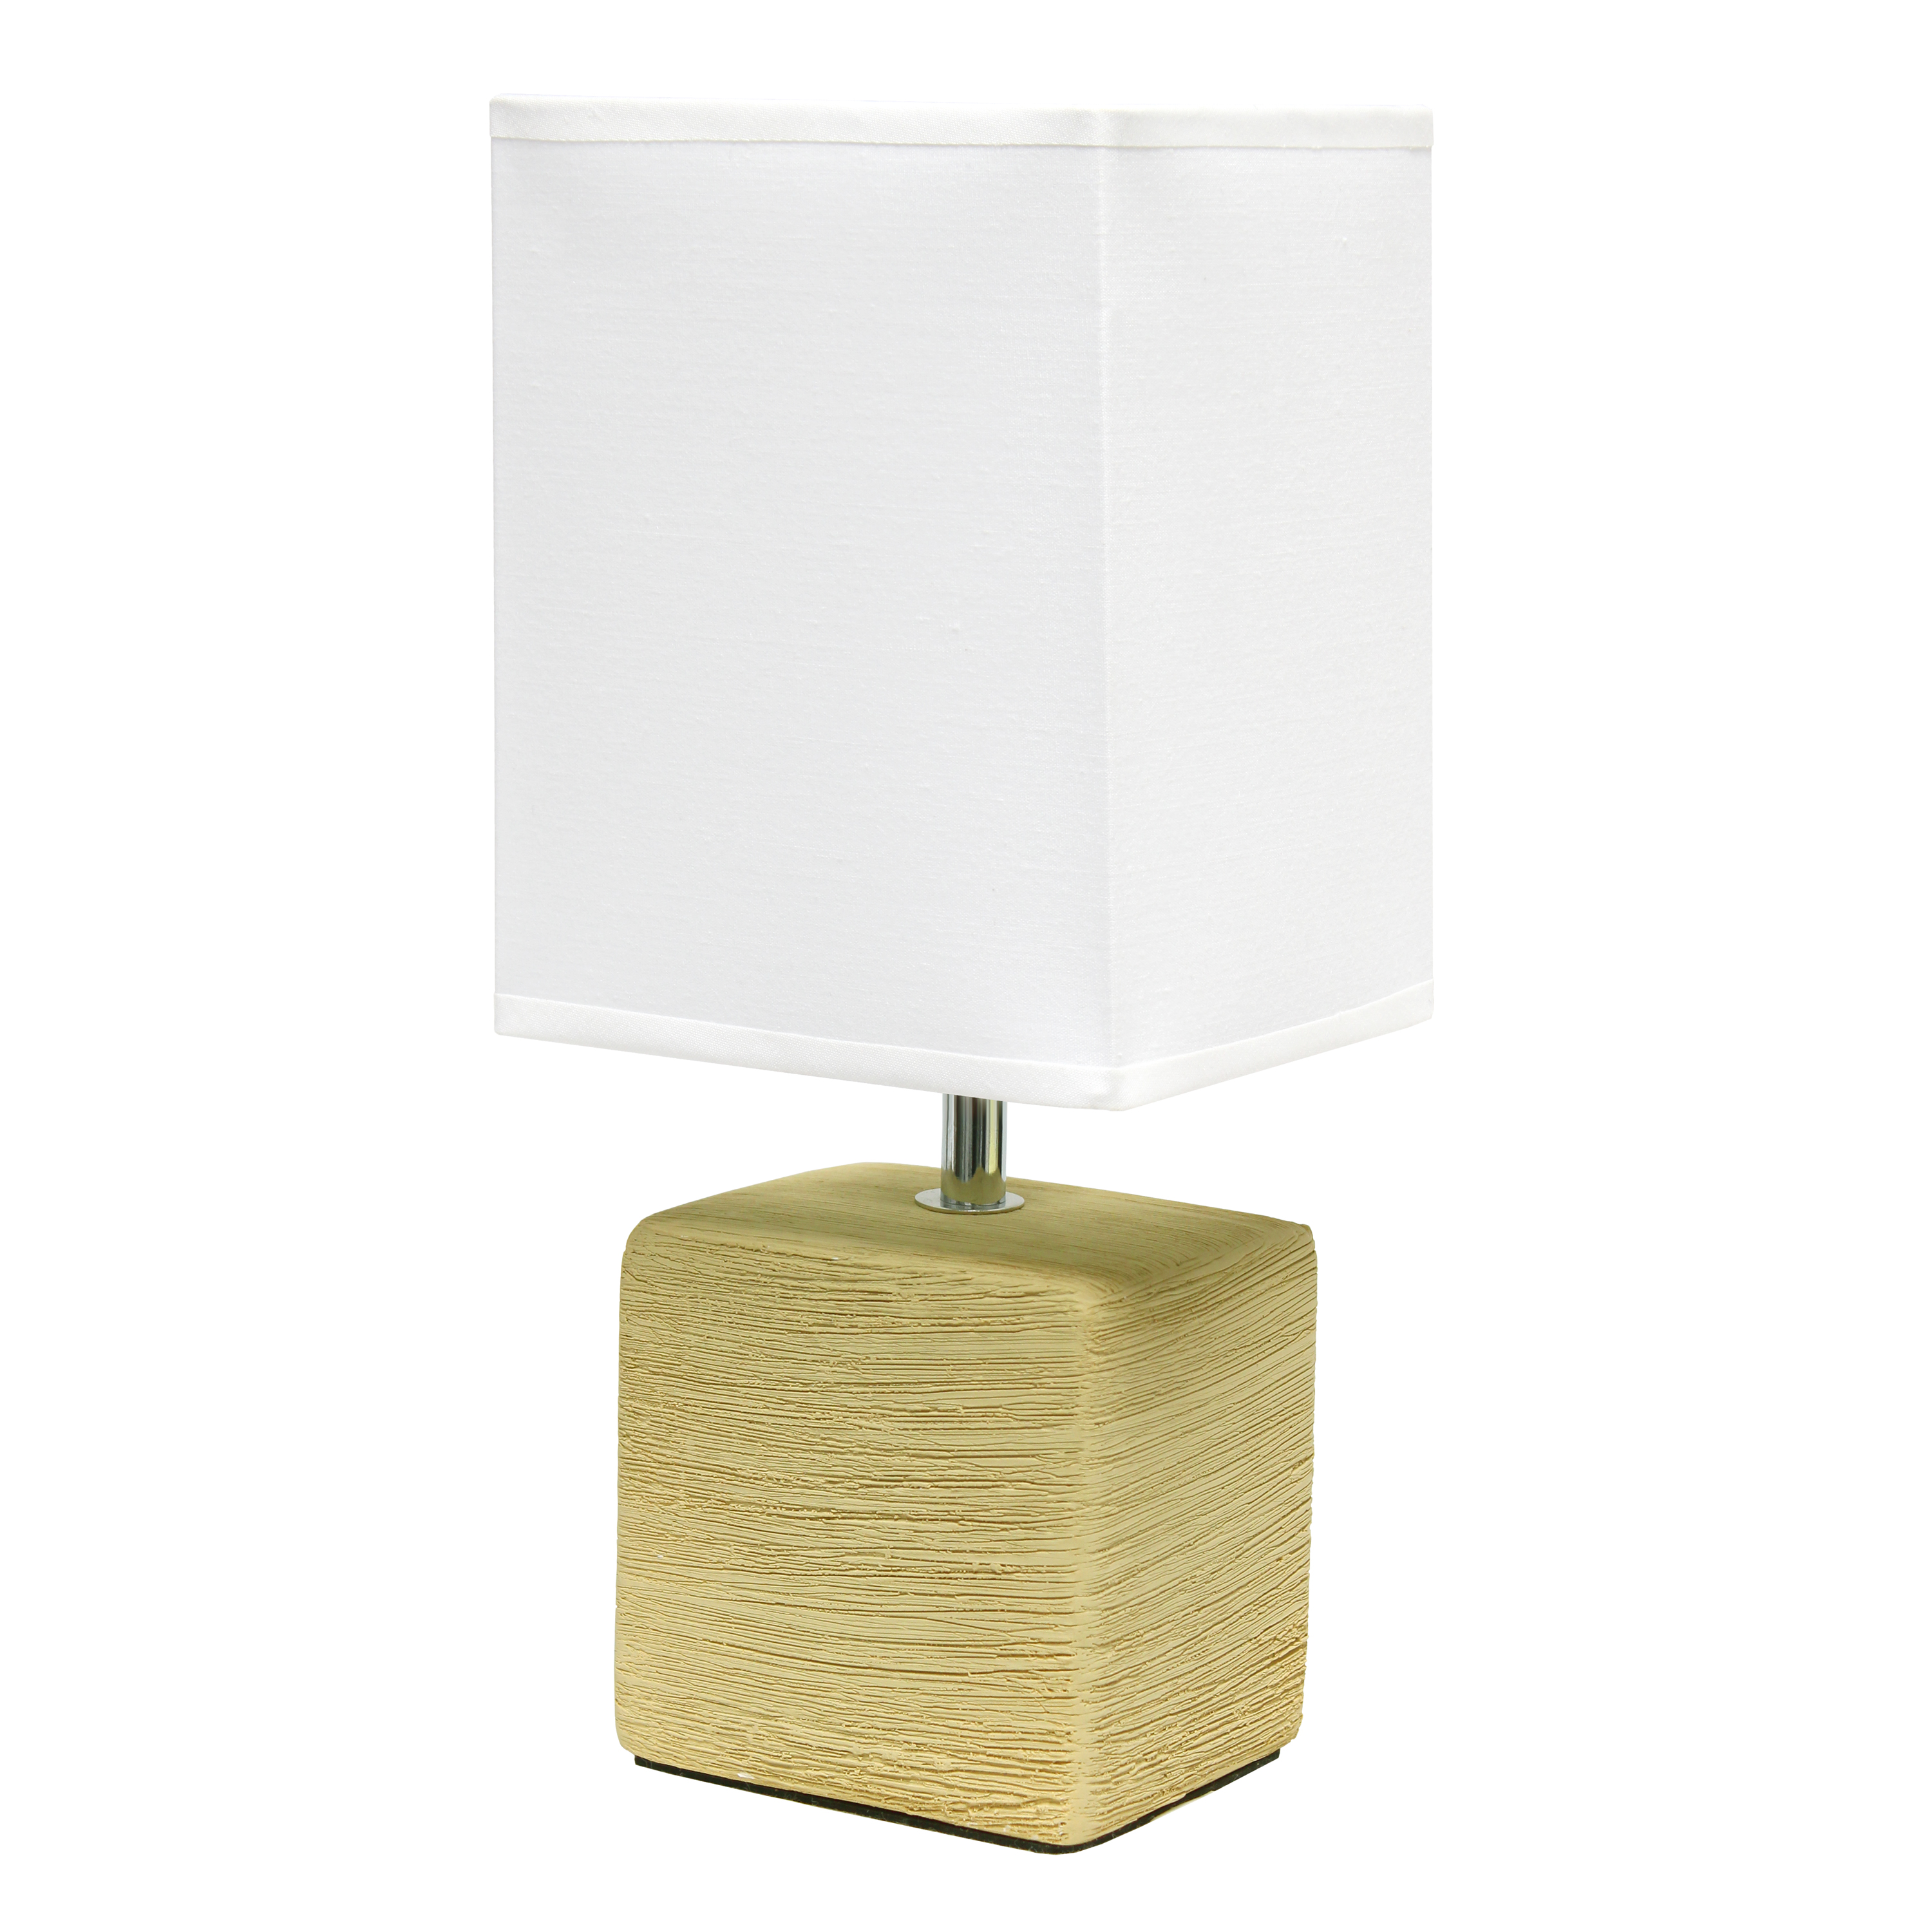 Simple Designs Petite Faux Stone Table Lamp with Fabric Shade, Beige with White Shade